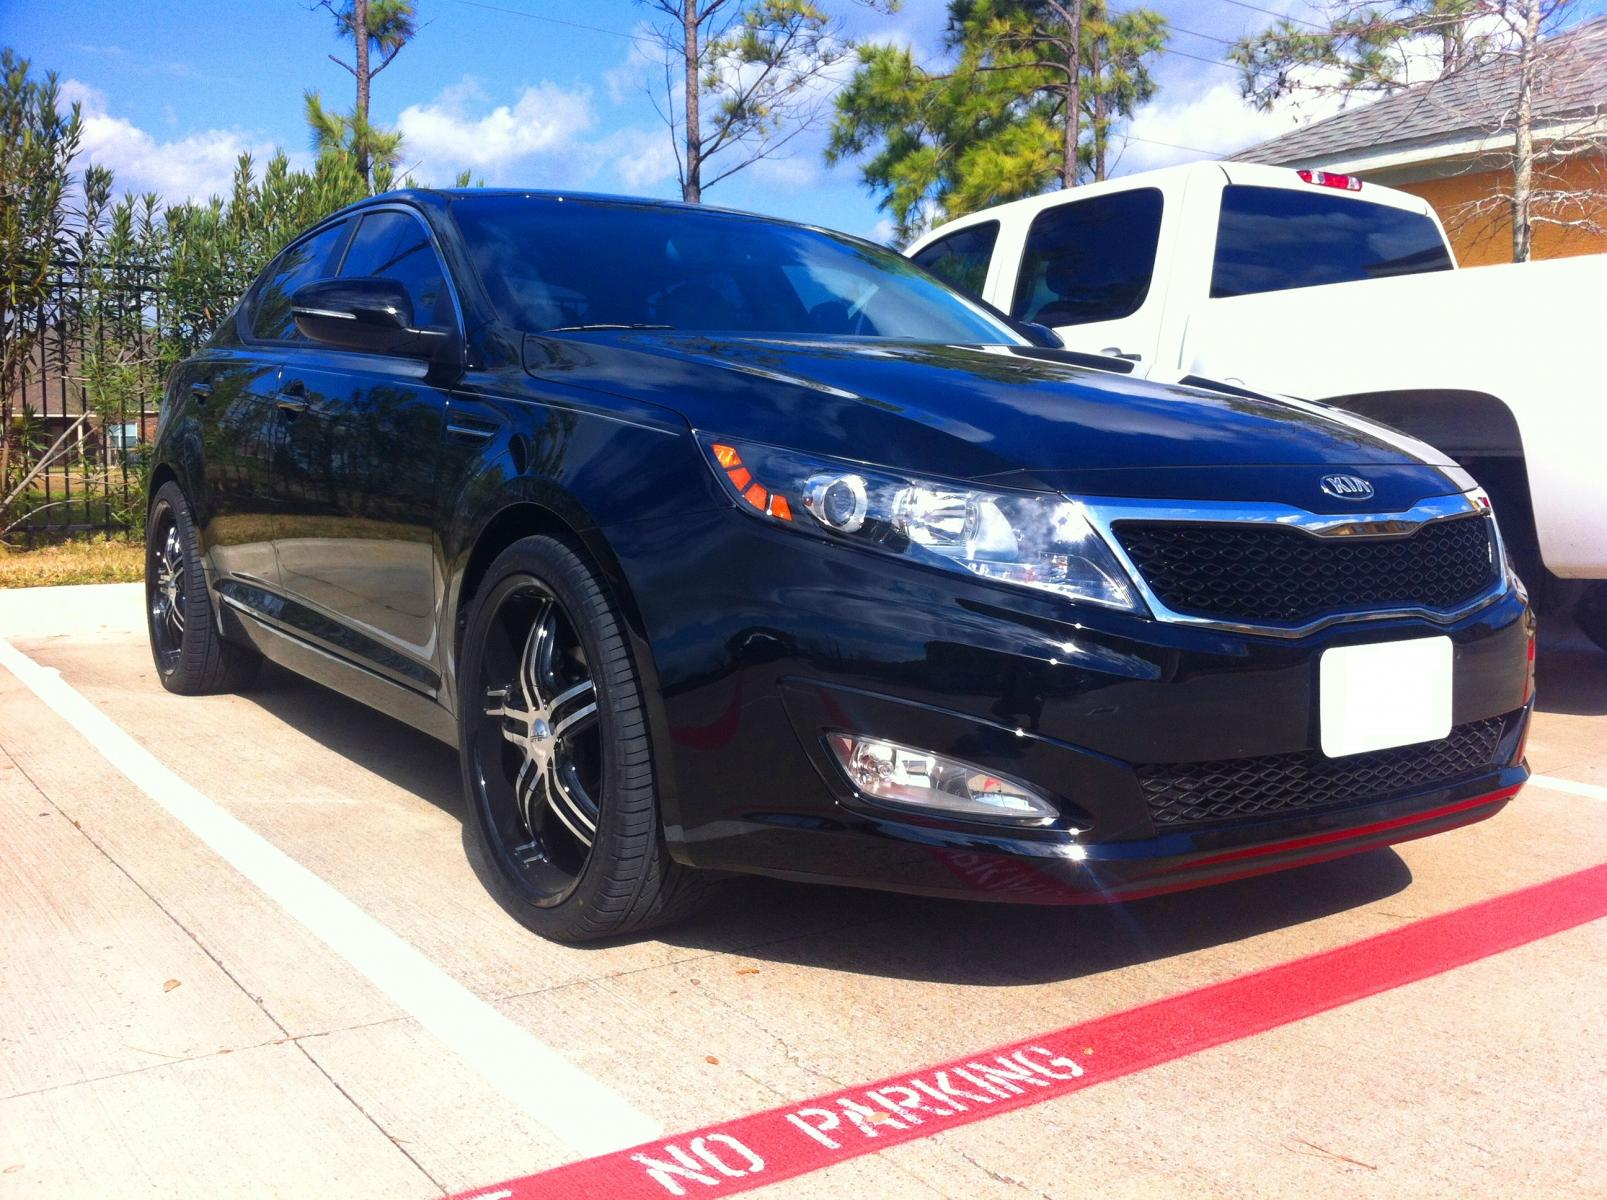 Kia Optima 2013 Black 2013 Kia Optima EX Black with